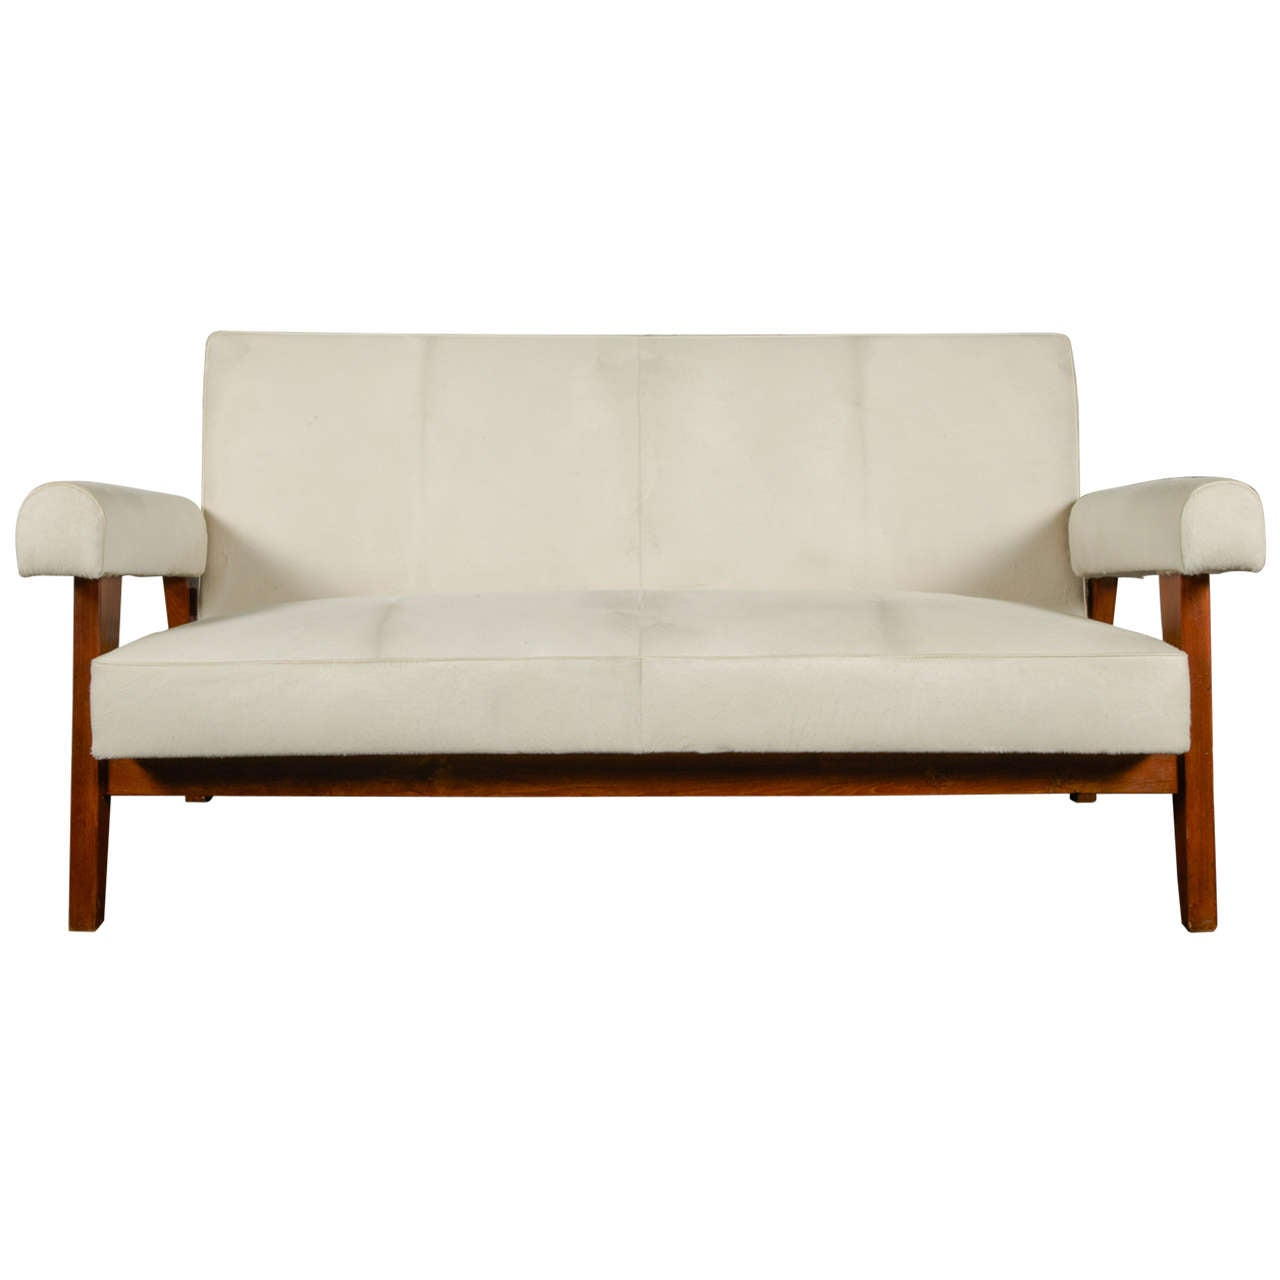 courts sofa moroni havana pierre jeanneret quothigh court down quot ca 1955 at 1stdibs